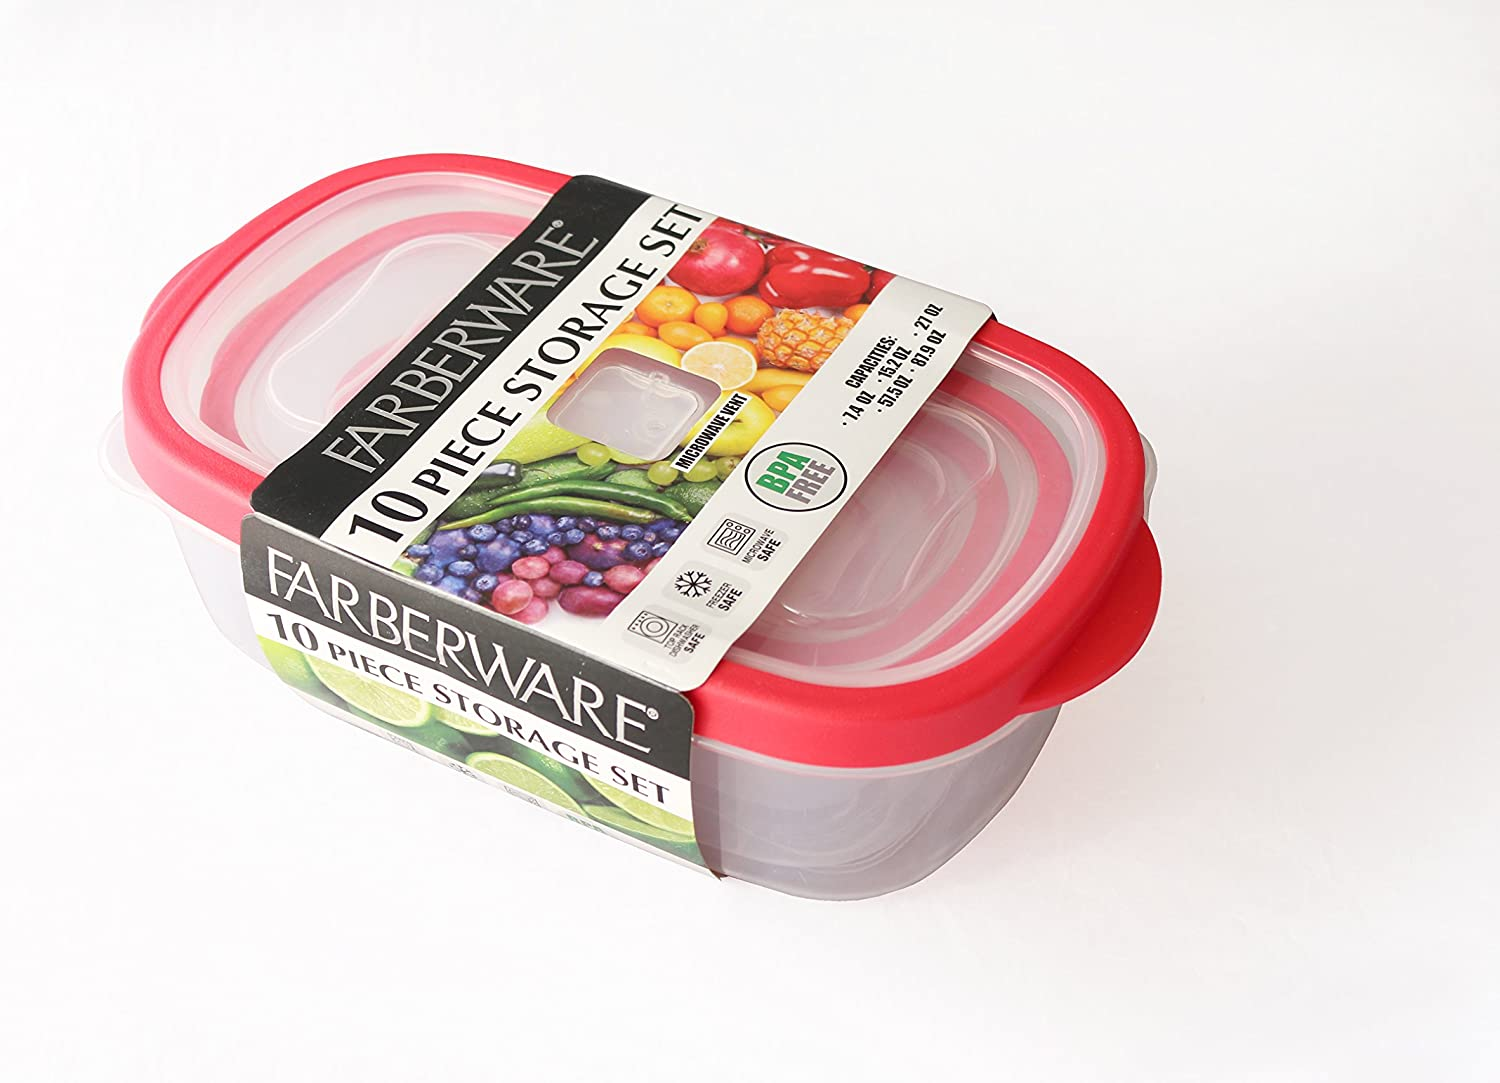 Farberware 10 Piece Plastic Rectangle 'Vented' Nesting Set, Red Food Storage